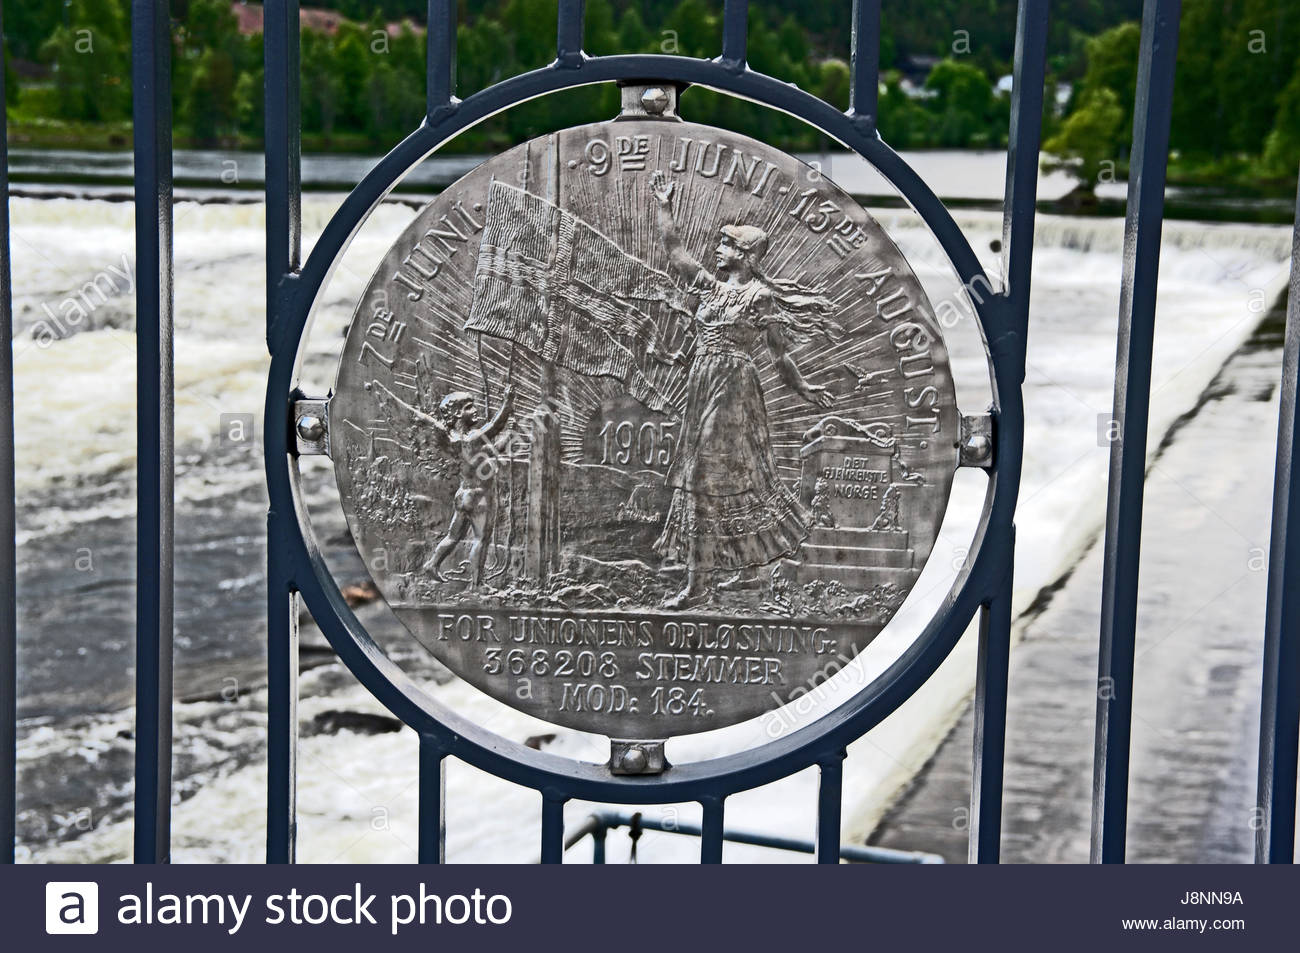 Olympic Park Lillehammer, Replica Mint Coin, From Royal Mint Silver Mine, On Bridge over ...